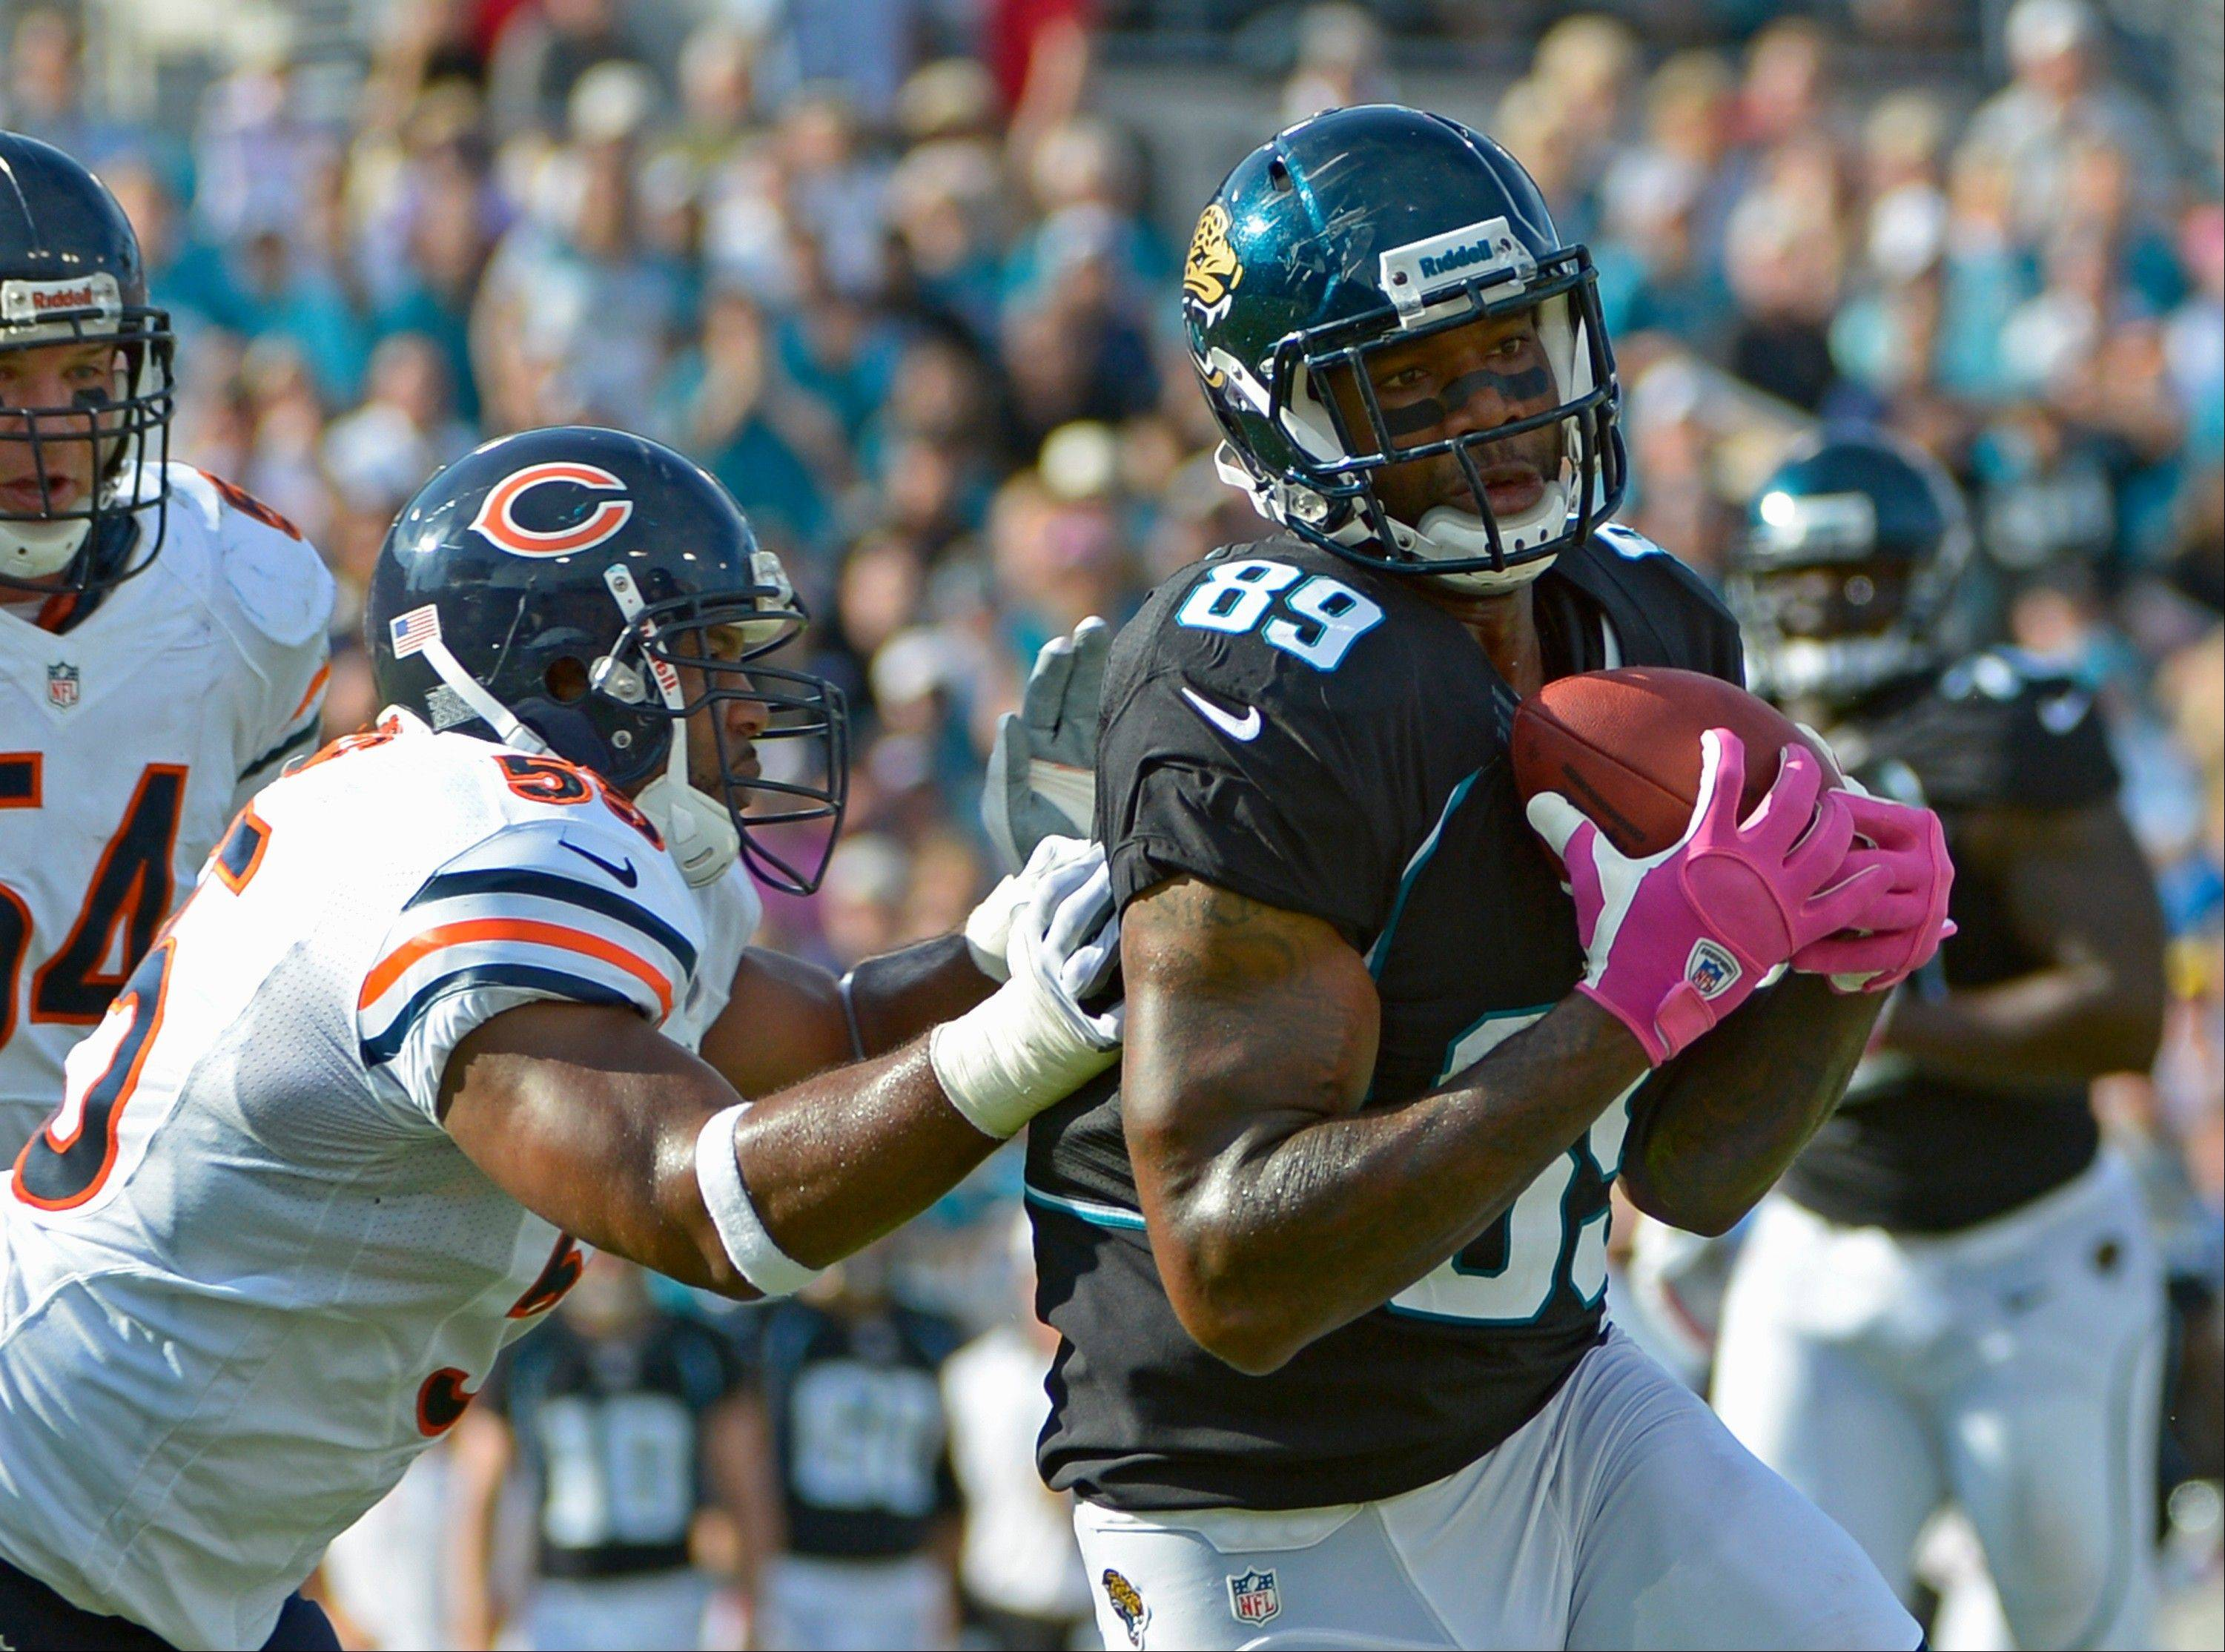 Jacksonville Jaguars tight end Marcedes Lewis catches a pass in front of Chicago Bears outside linebacker Lance Briggs, left, during the first half, Sunday, in Jacksonville, Fla.